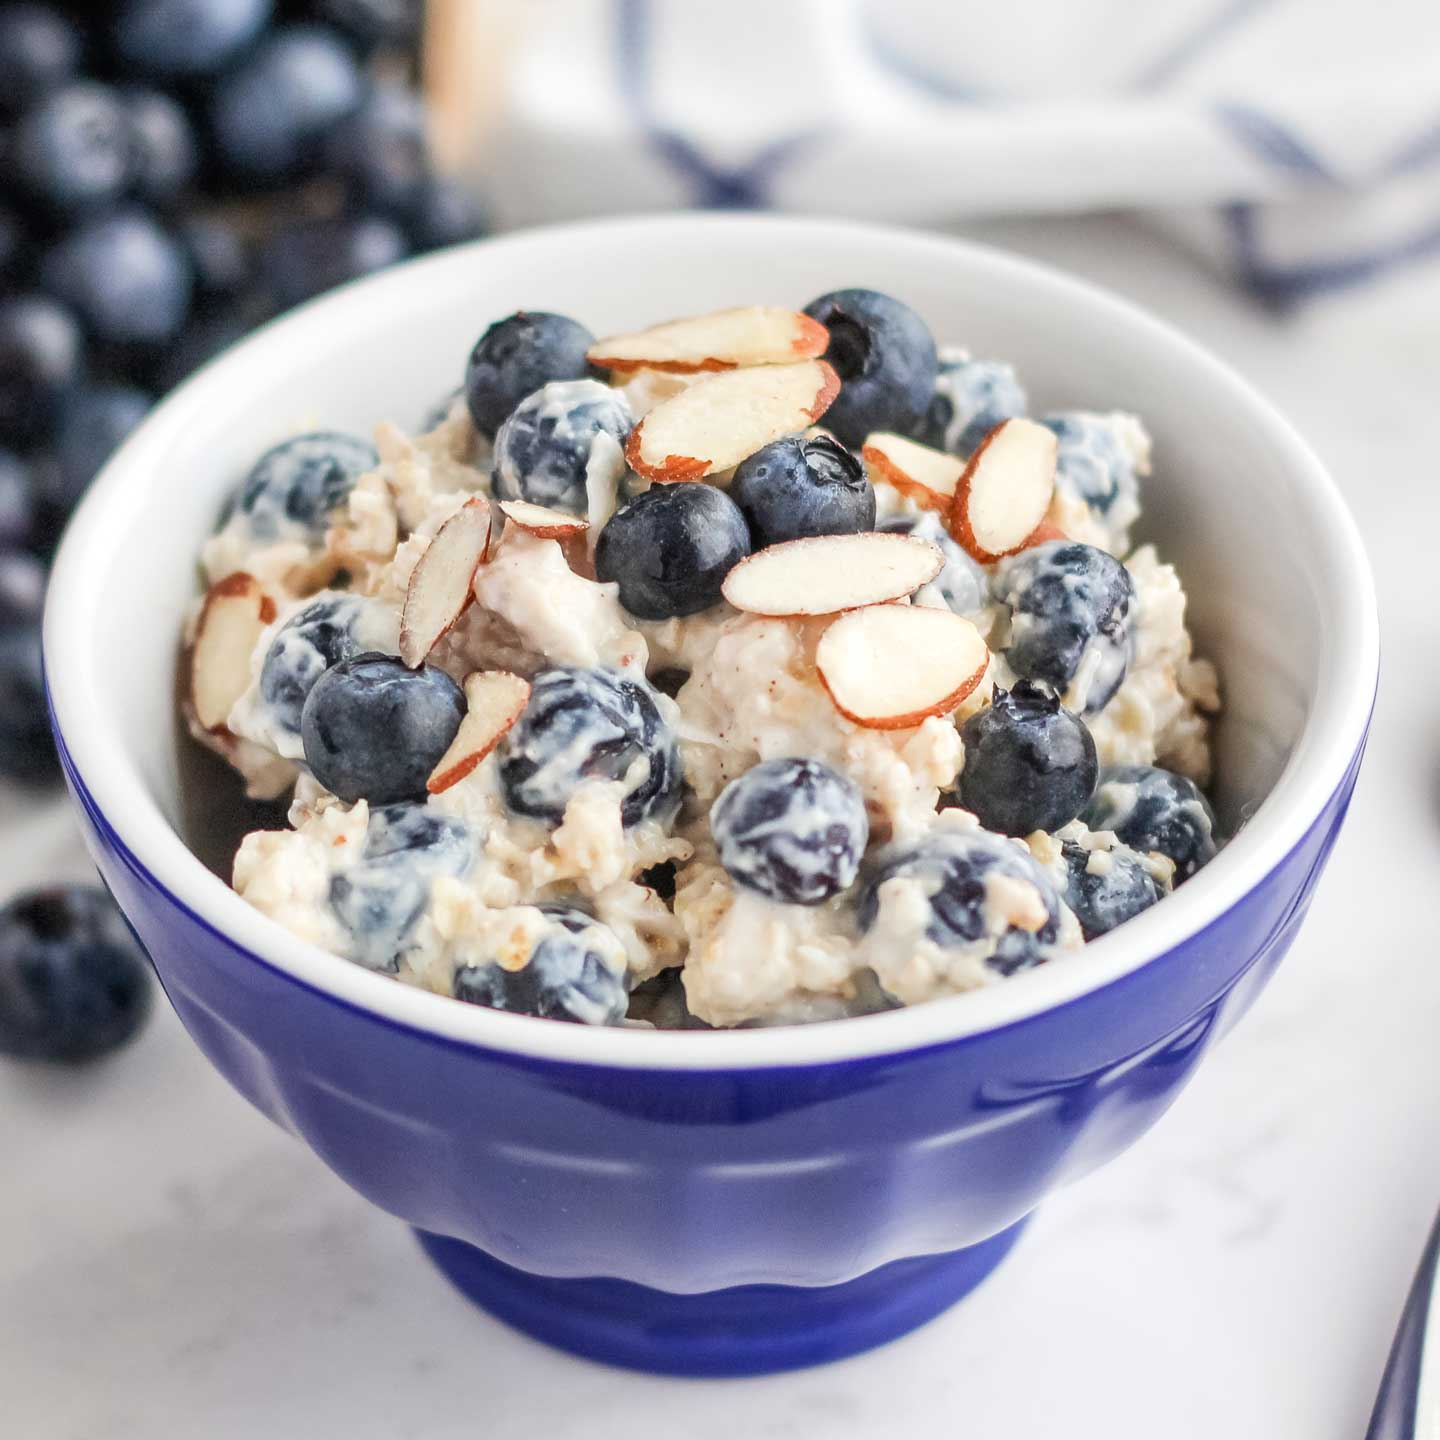 Closeup of a single serving of this cold oatmeal in a little blue bowl, with a blue-striped towel and additional blueberries in the background.